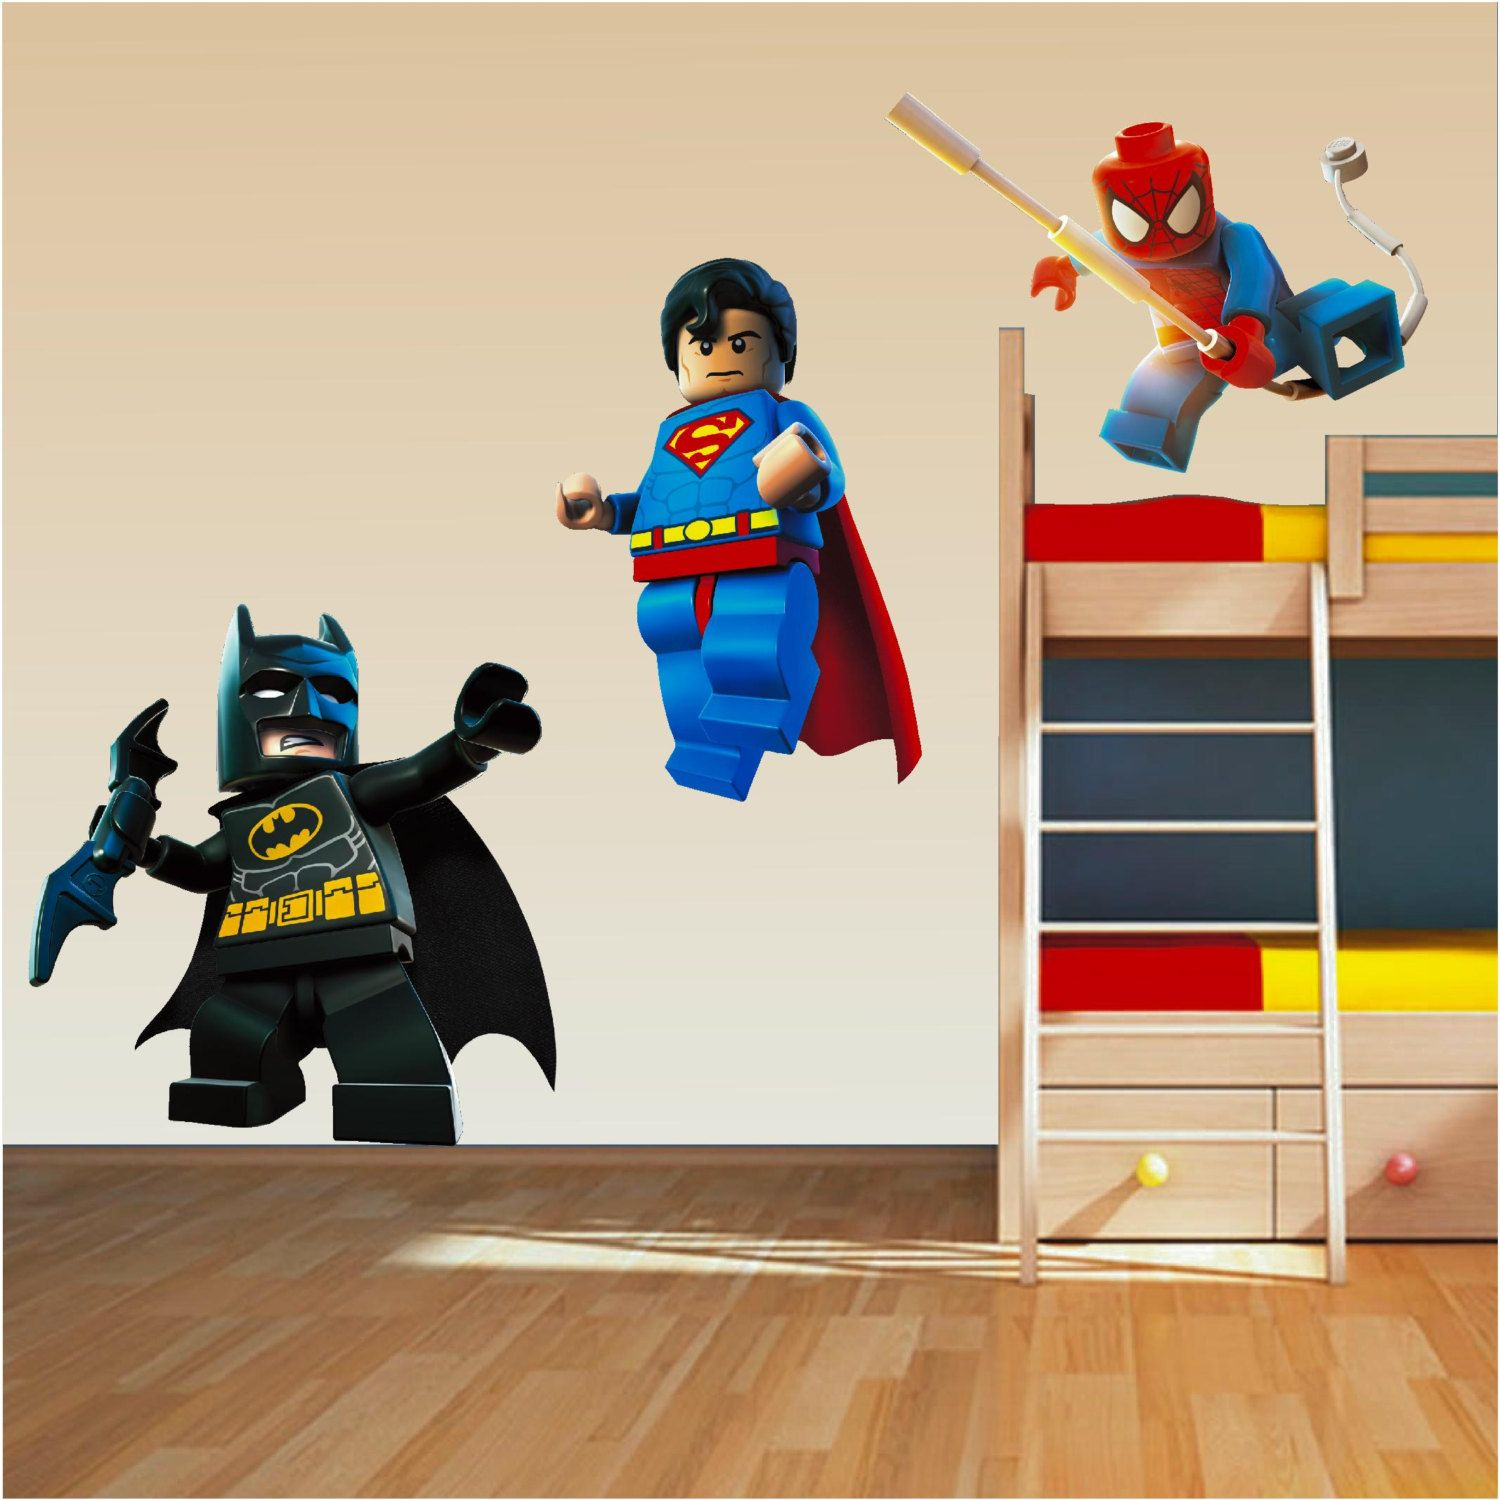 lego marvel super heroes decal removable wall sticker decor art